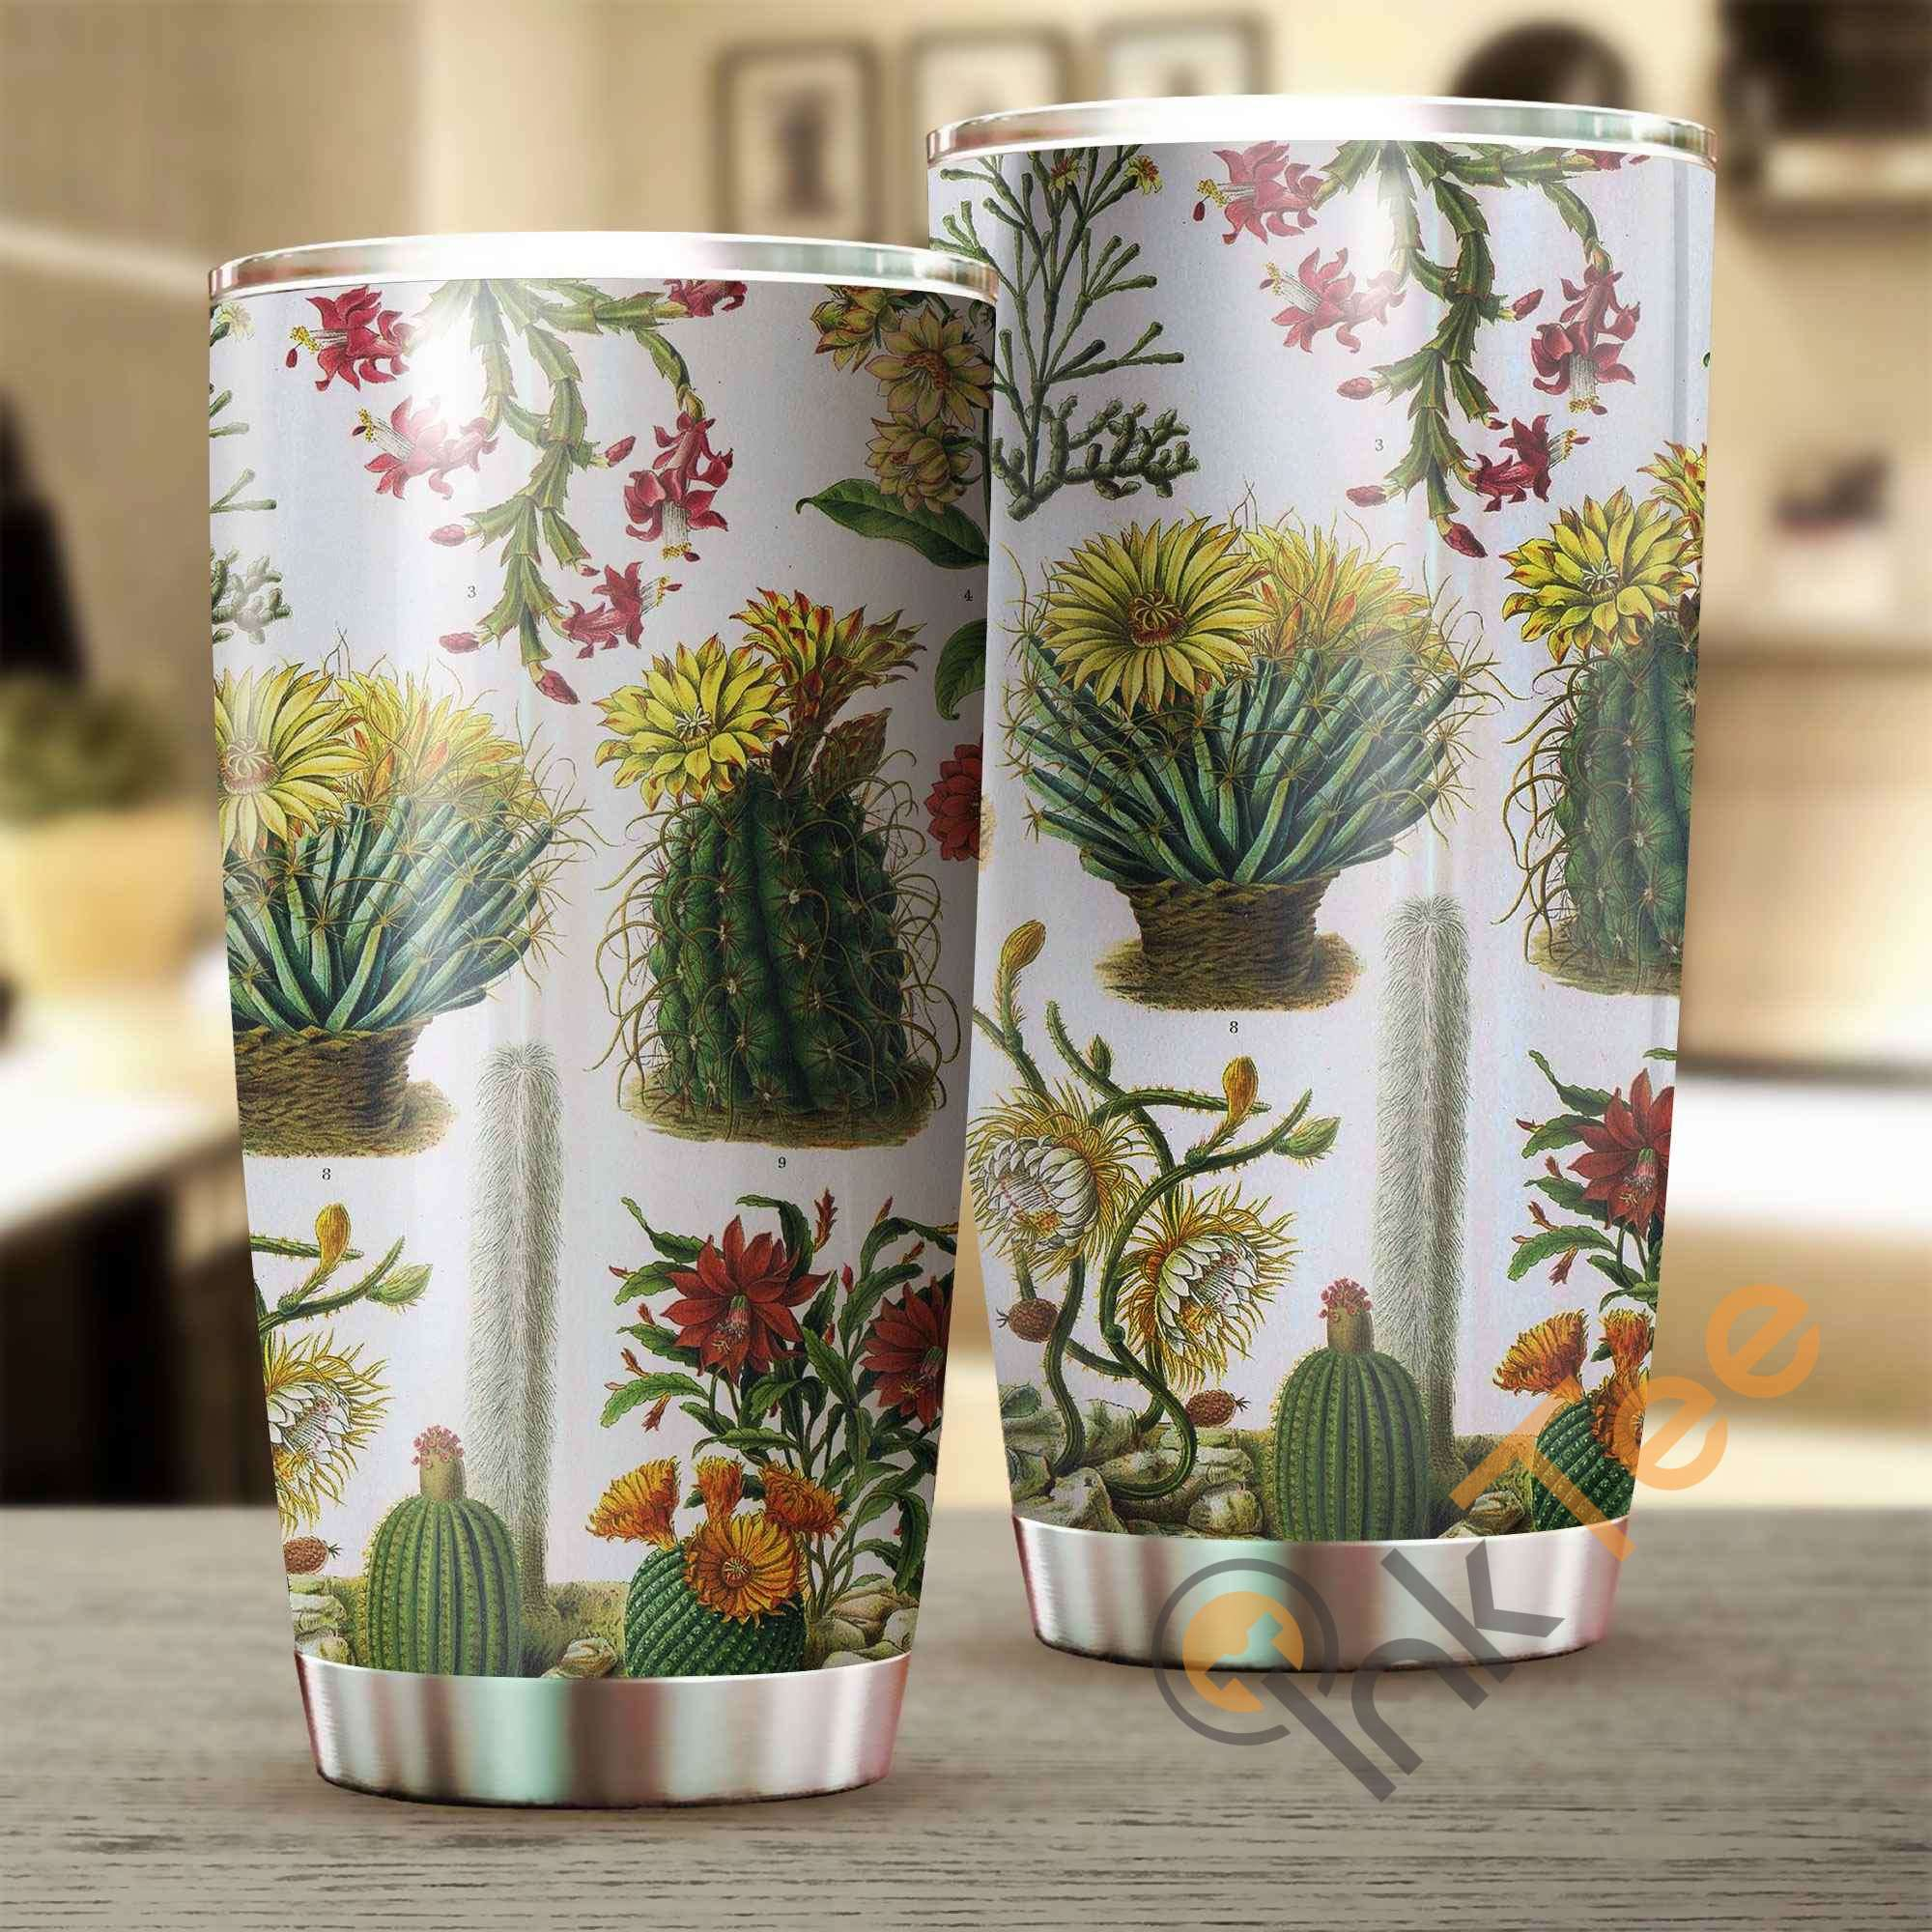 Love Cactus Amazon Best Seller Sku 3242 Stainless Steel Tumbler